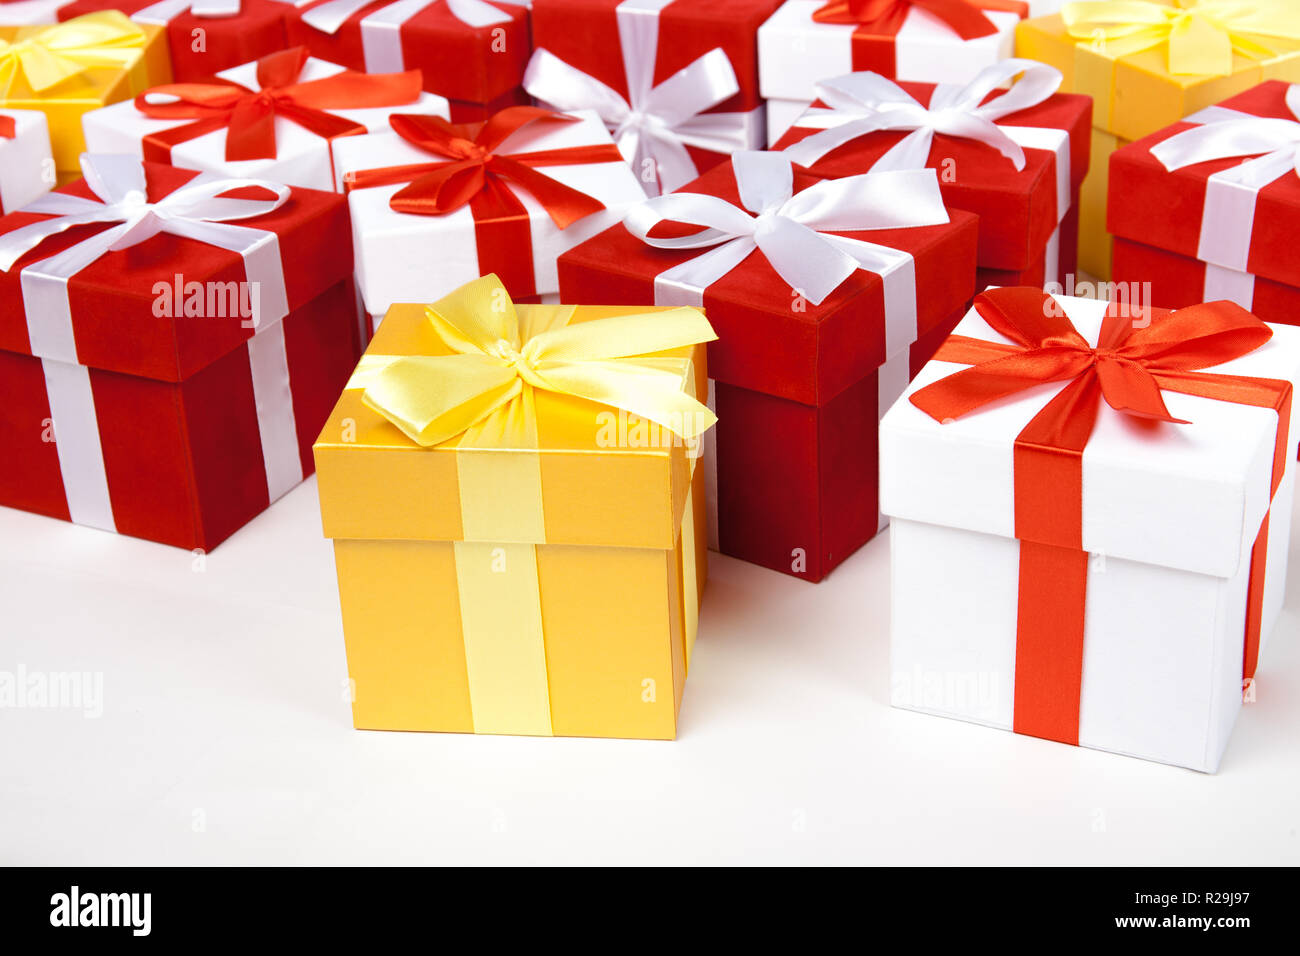 Red And White And Golden Gift Boxes Stay In Line With Copy Space